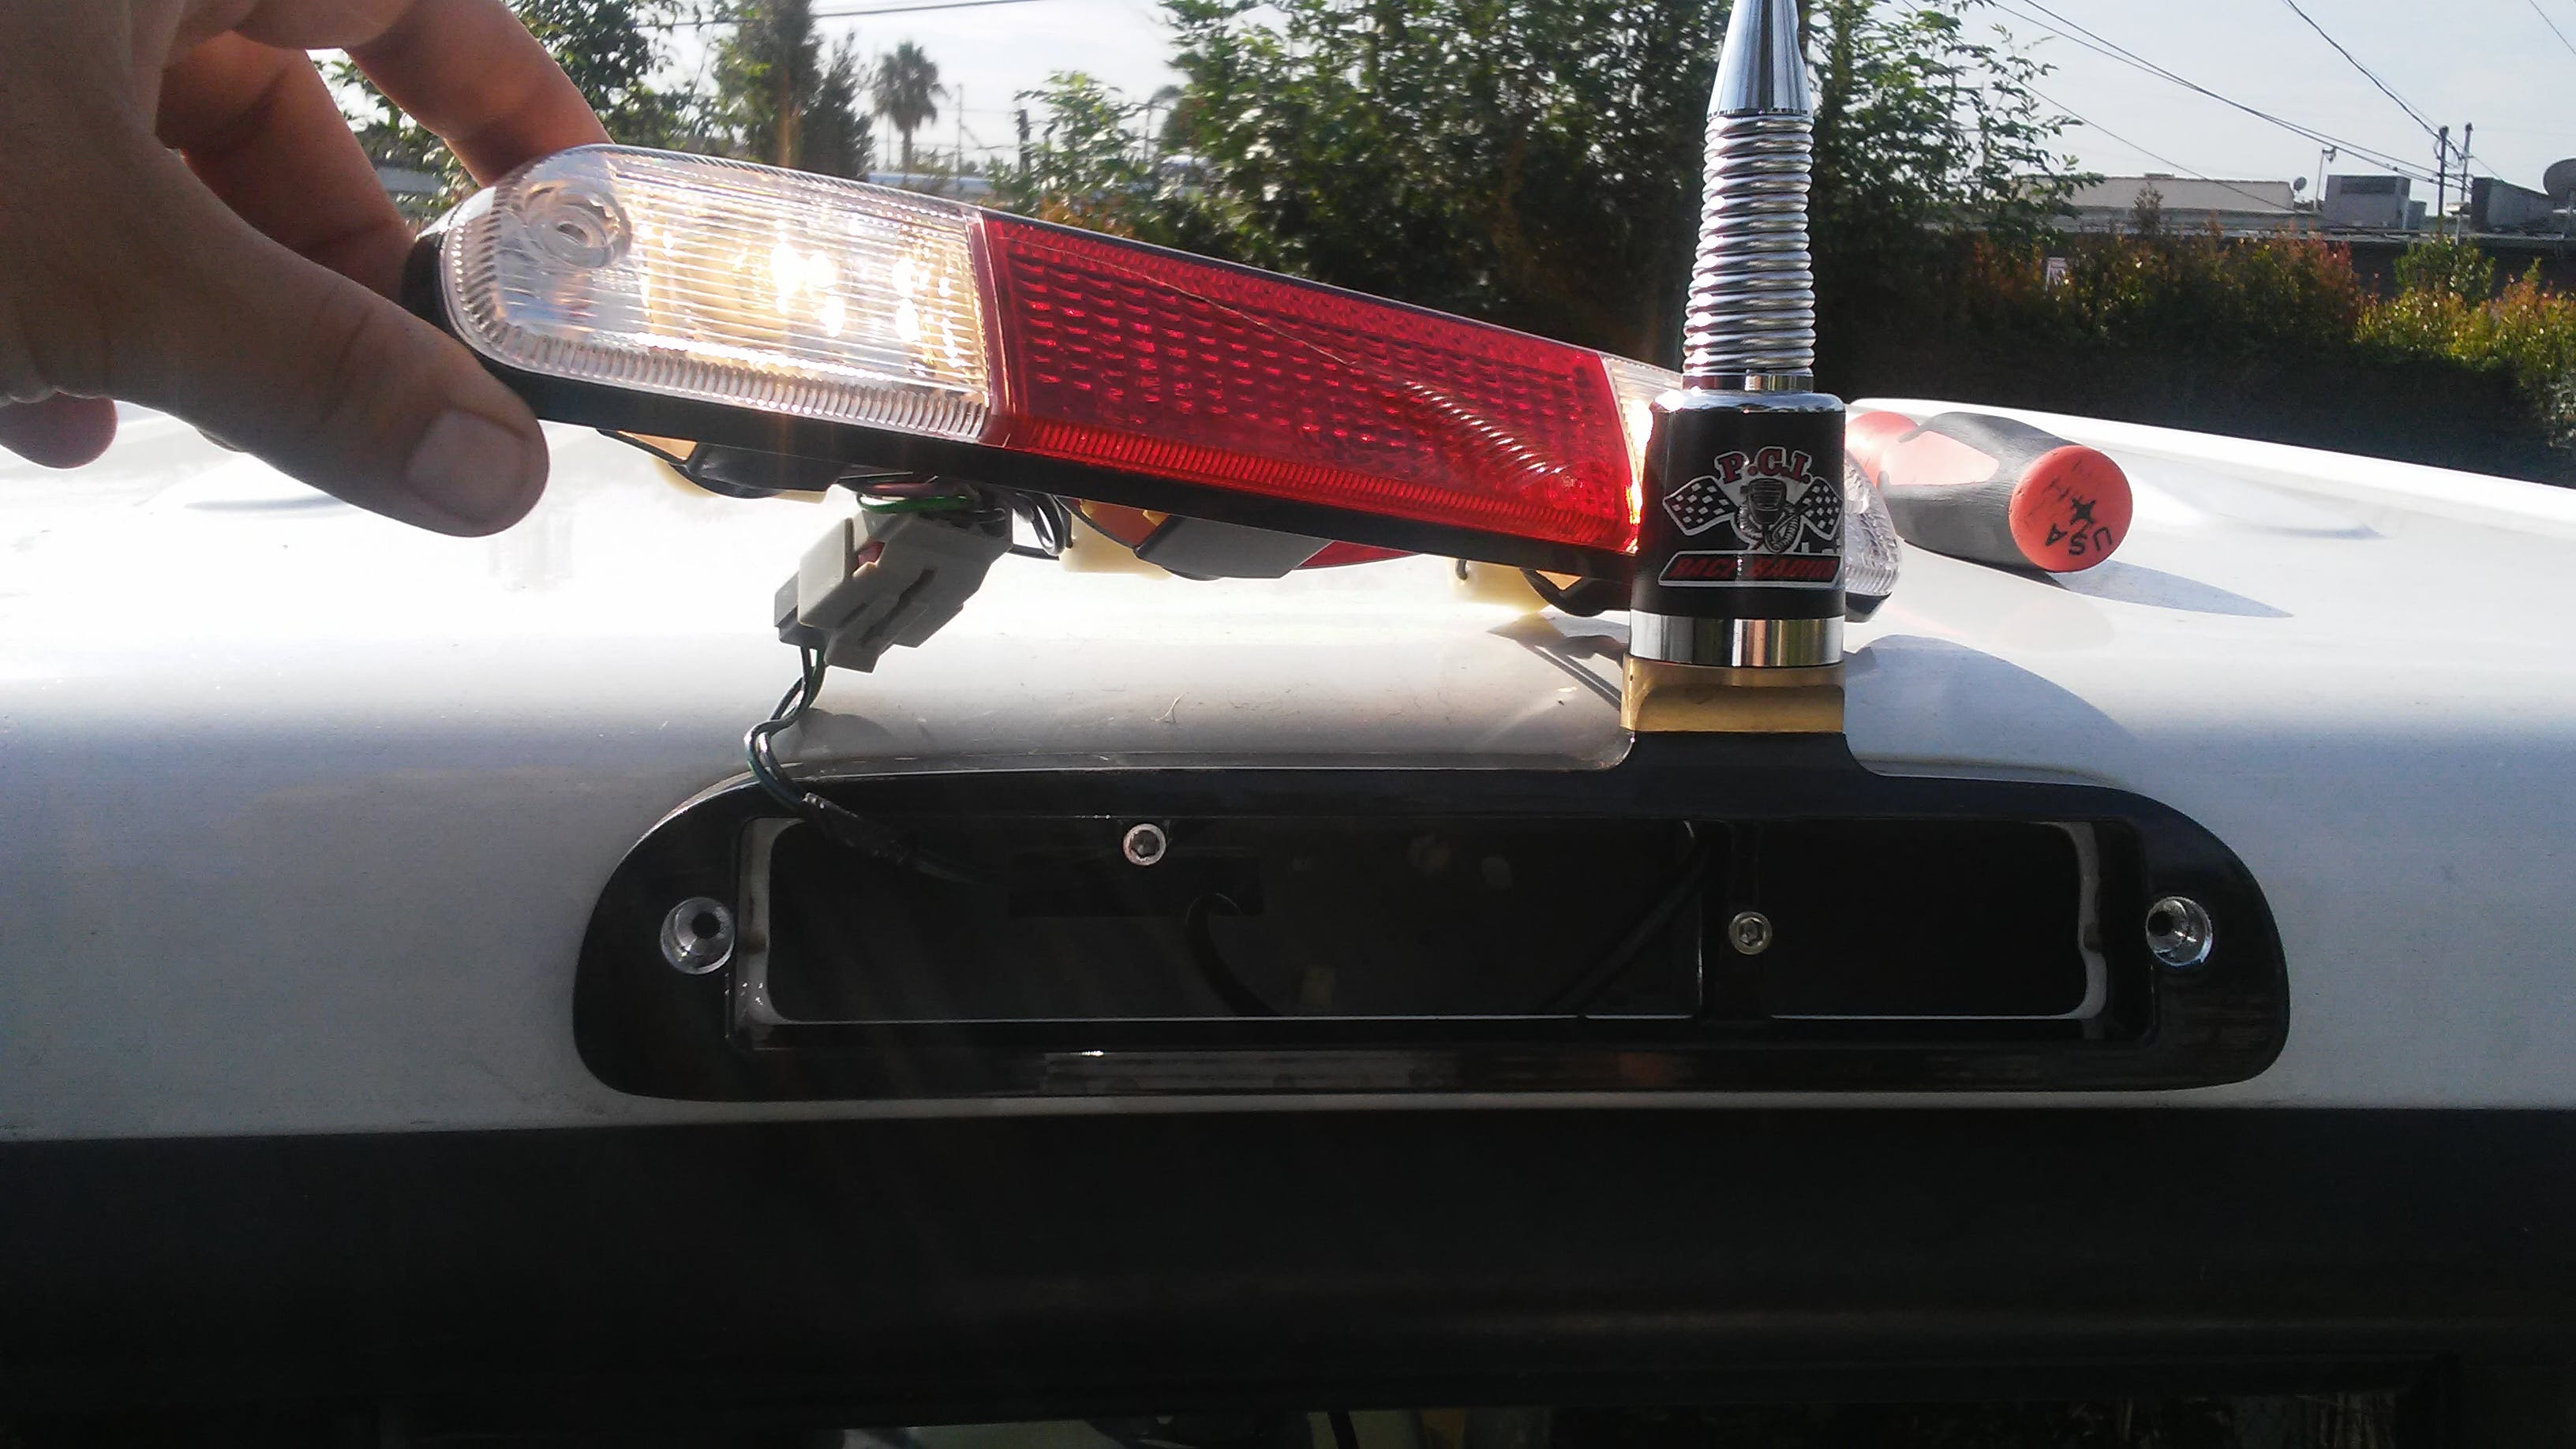 Brake Light Antenna Mount Pci Race Radios